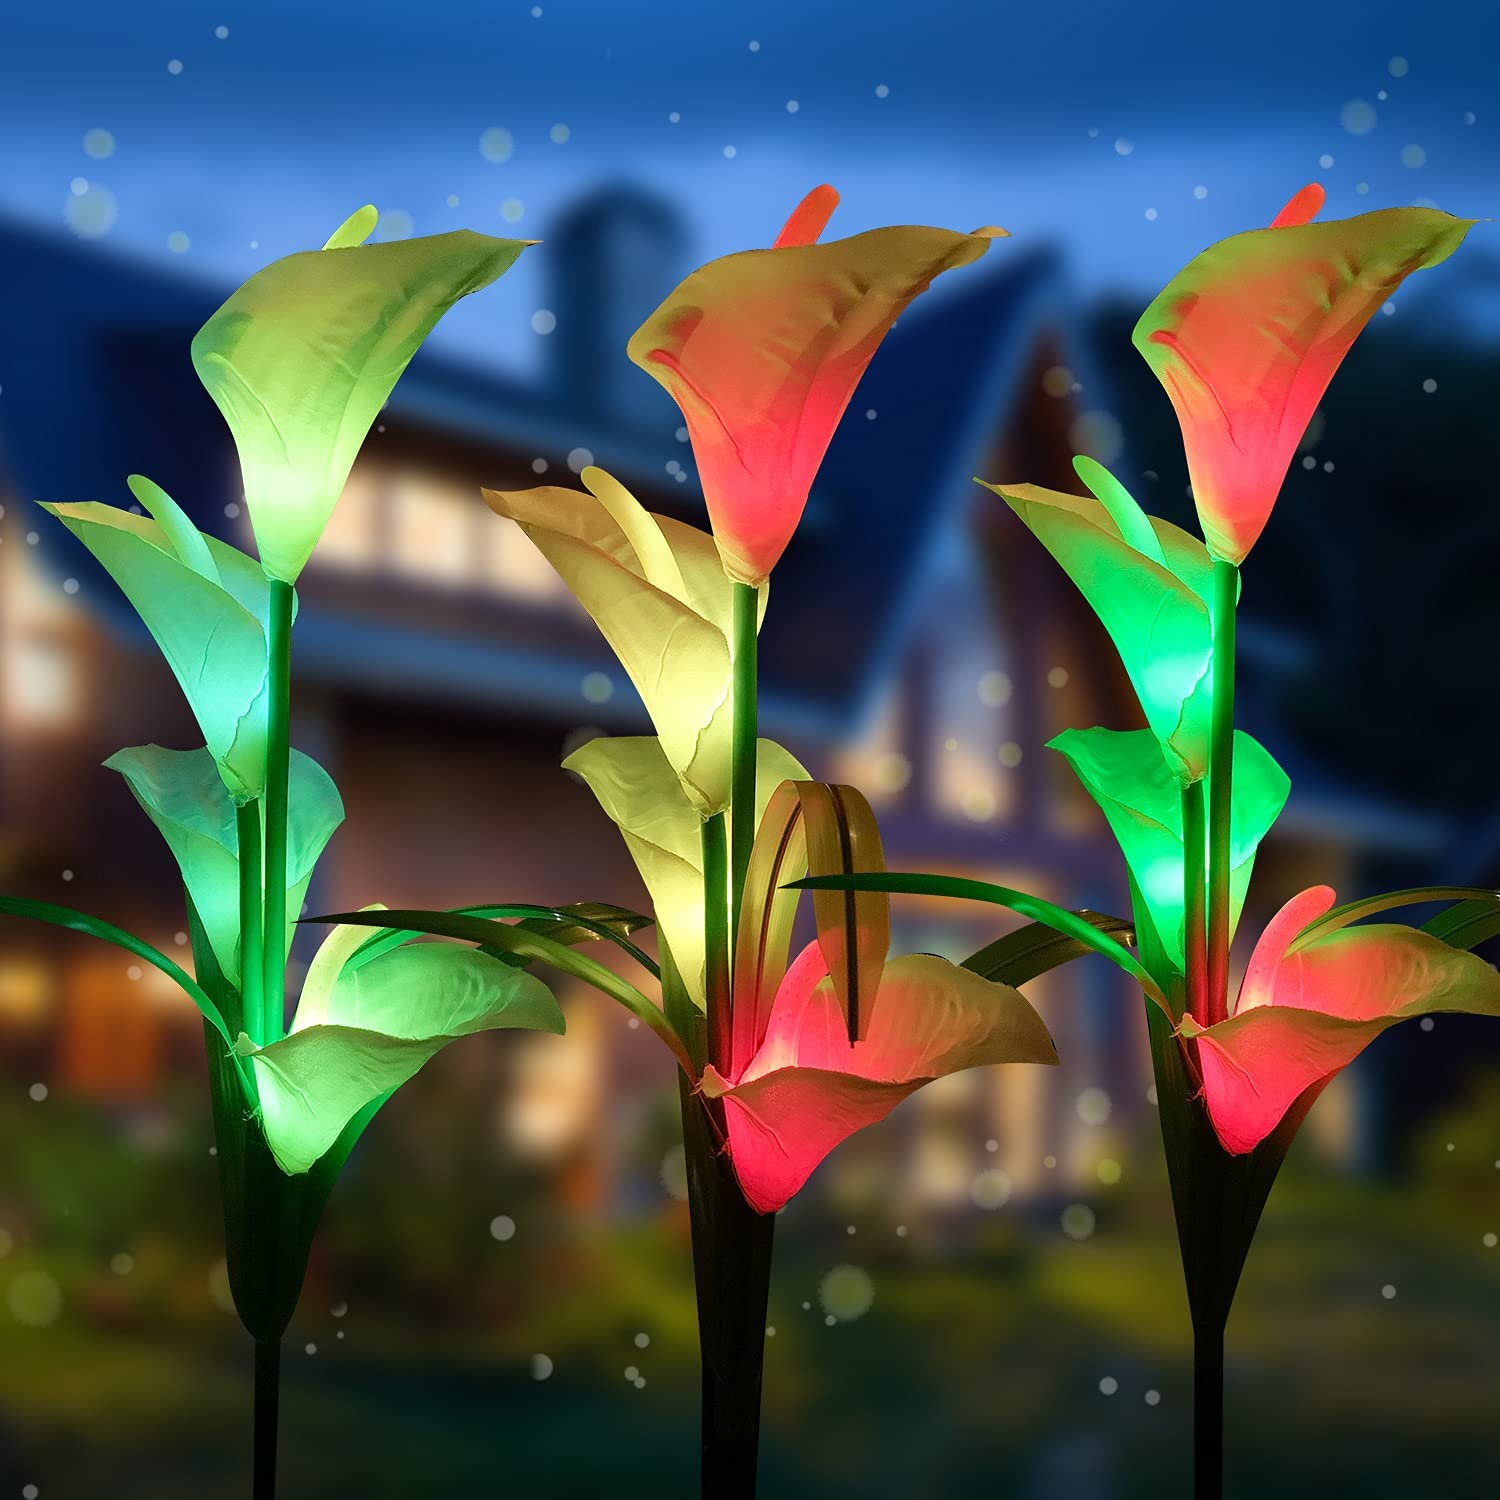 MIAGI Upgrade Solar Lights Outdoor Garden Stake Light with 12 Calla Lily Flowers,Premium Multi Color Changing LED Lily Solar Powered Waterproof Lights for Patio, Lawn, Garden, Yard Decoration.(3 Pack)